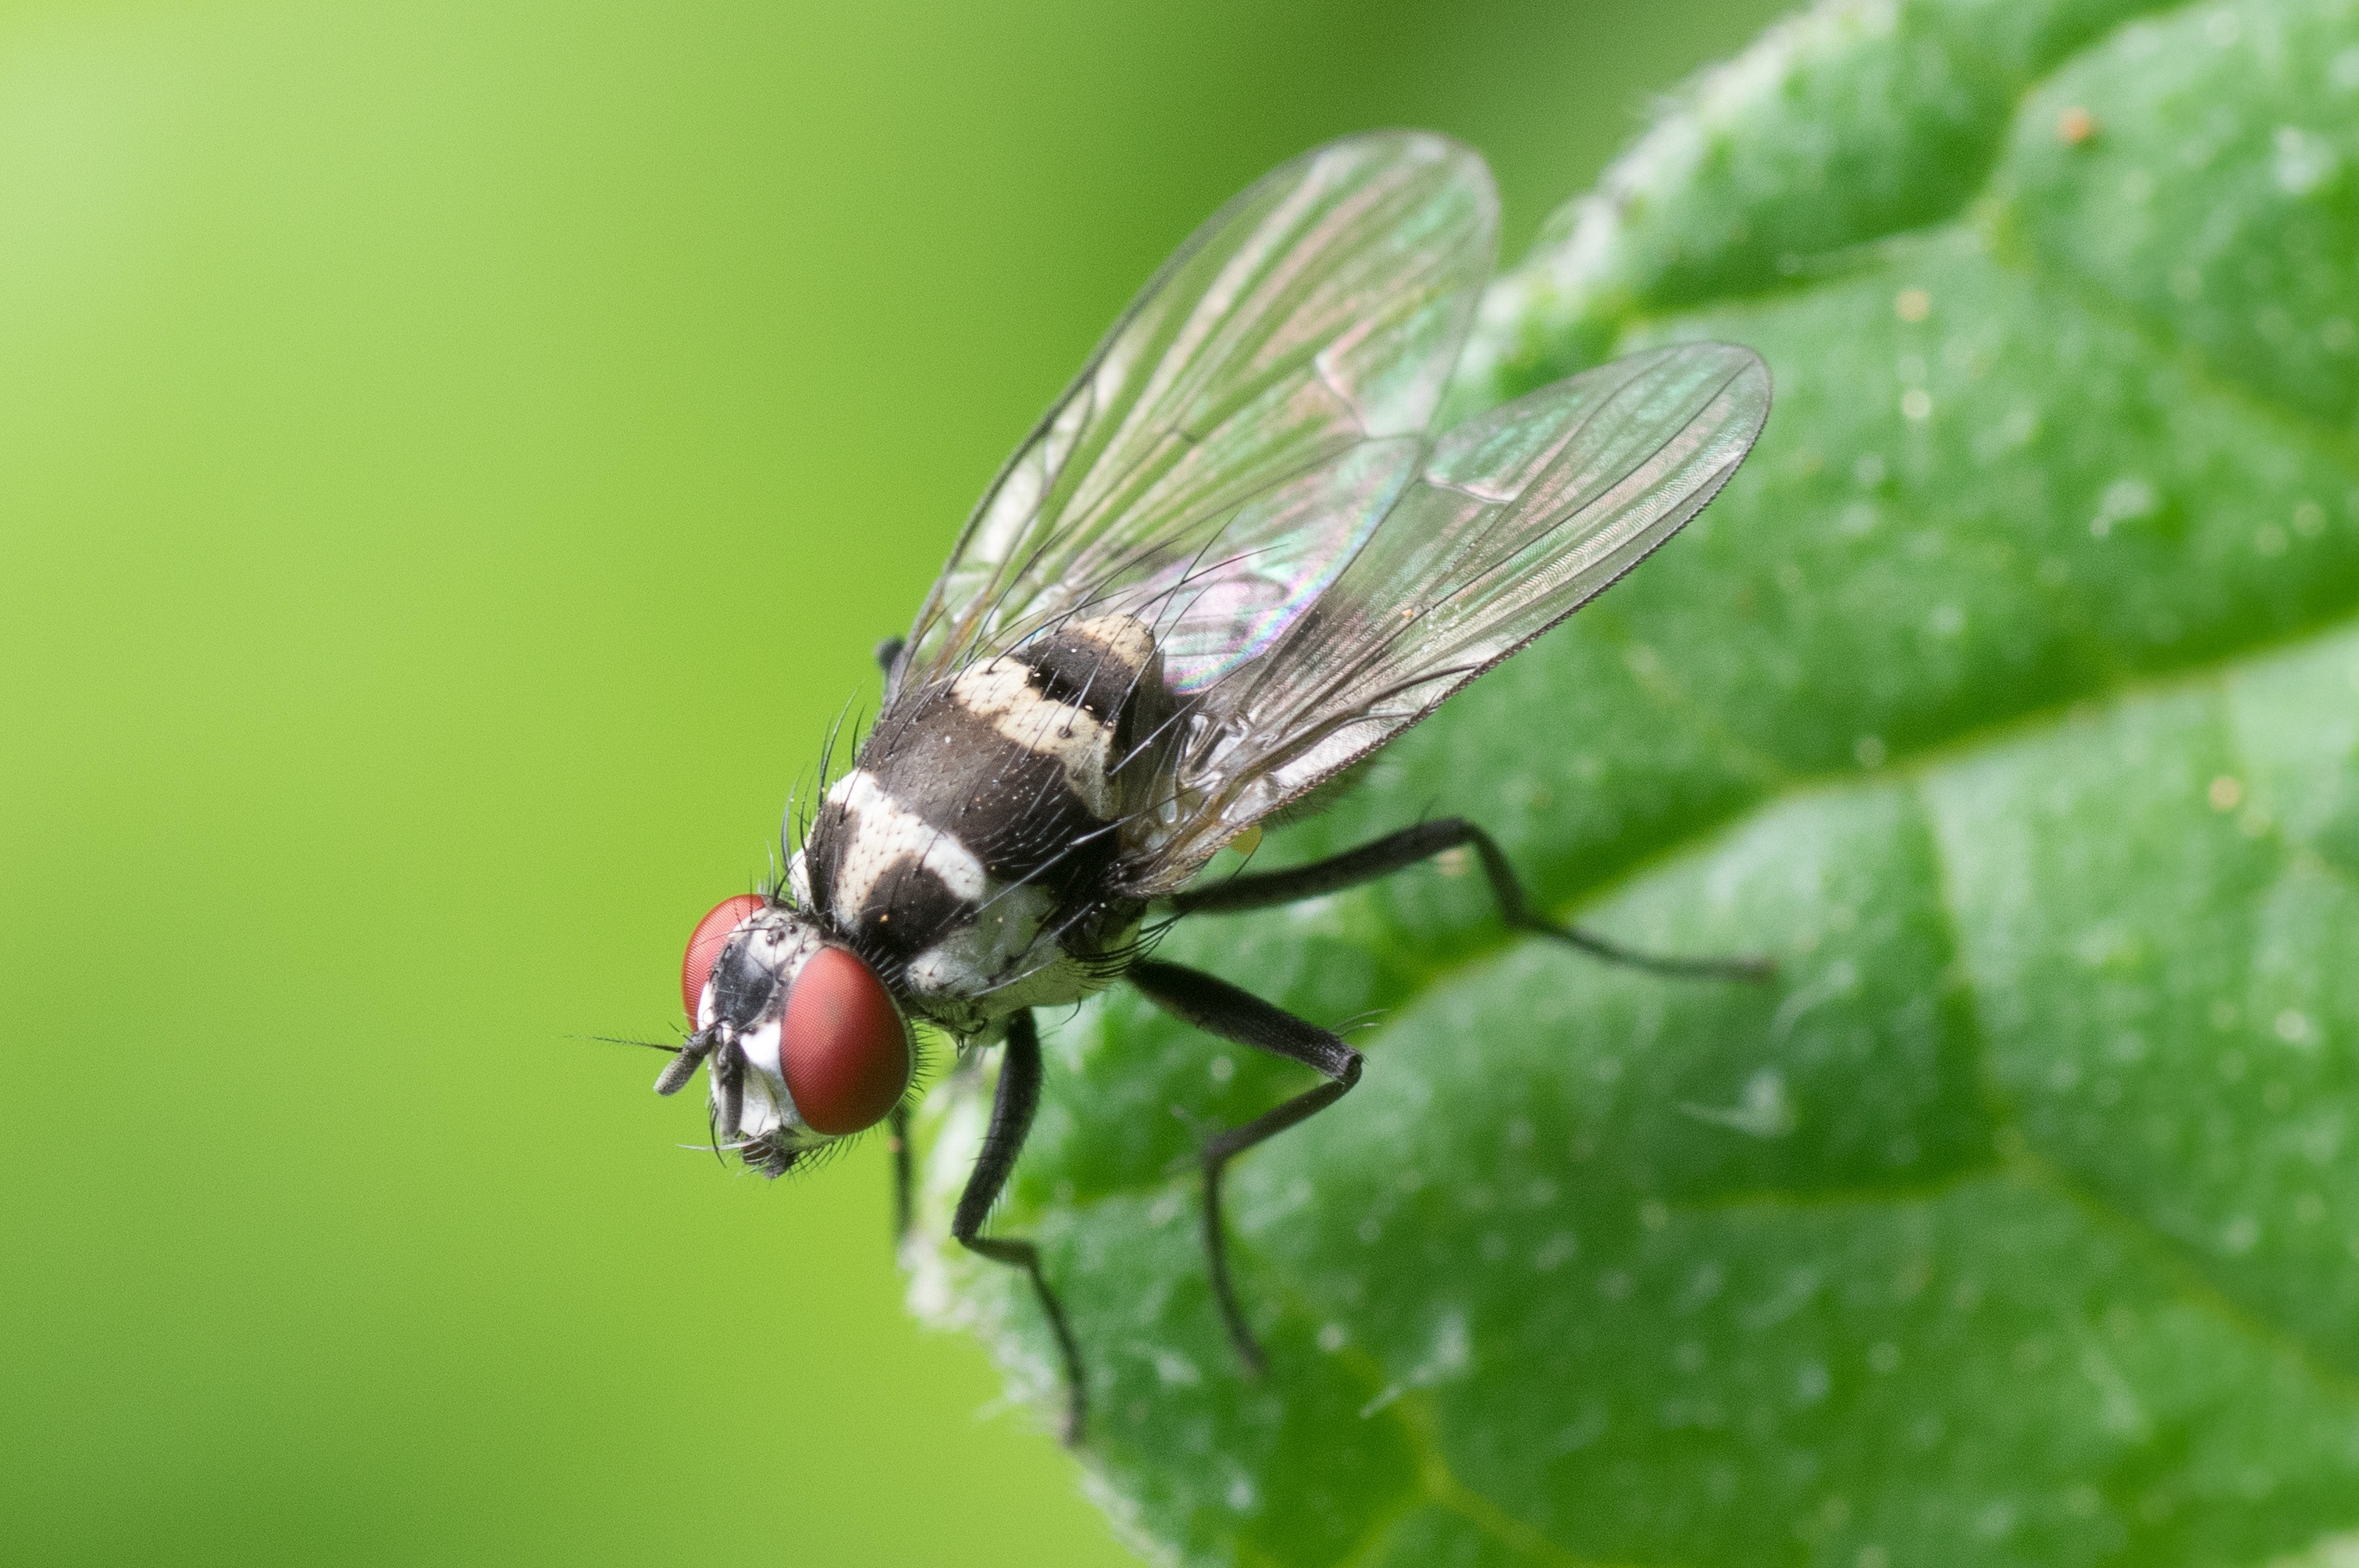 Black and Red Flying Insect Perched on Green Leaf · Free